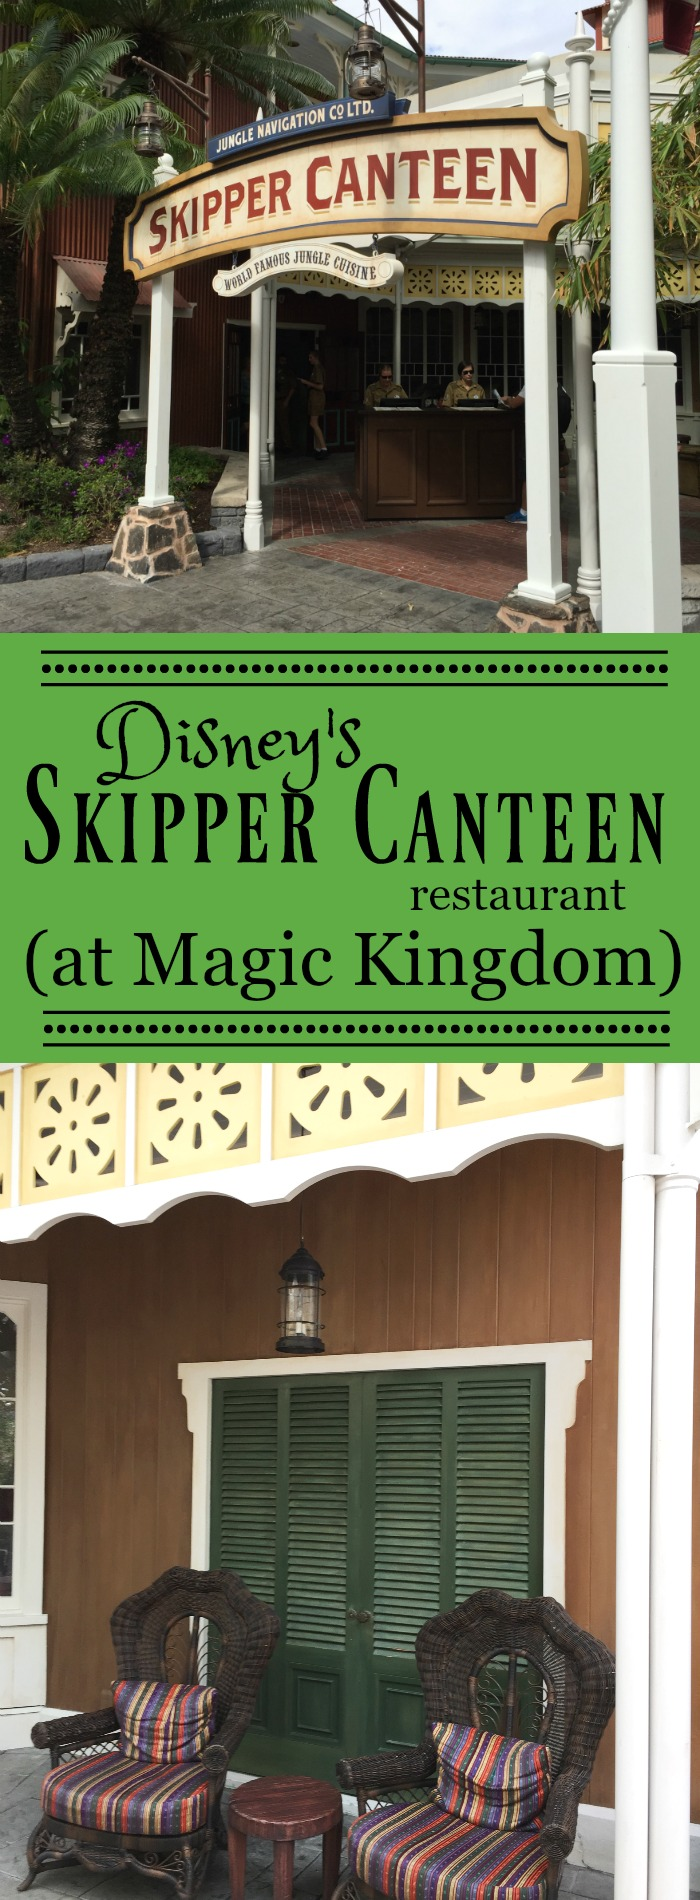 Disney's Skipper Canteen Restaurant at Magic Kingdom